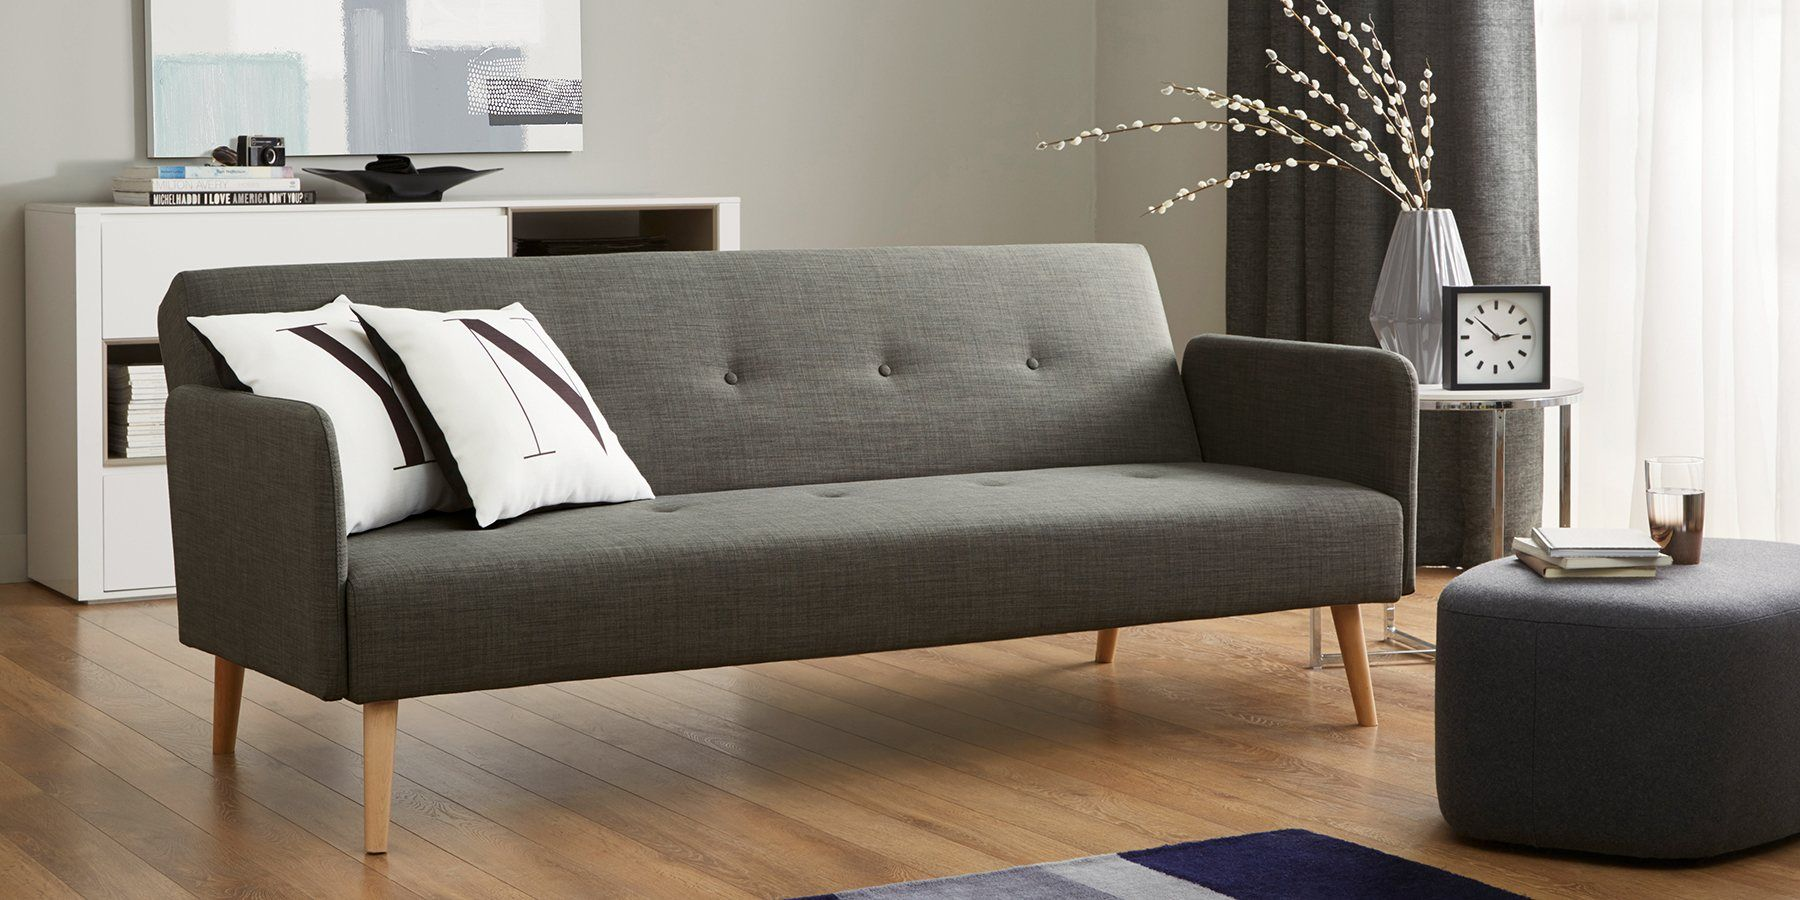 Buy Finnley Occasional Sofa Bed Medium (2 People) Simple